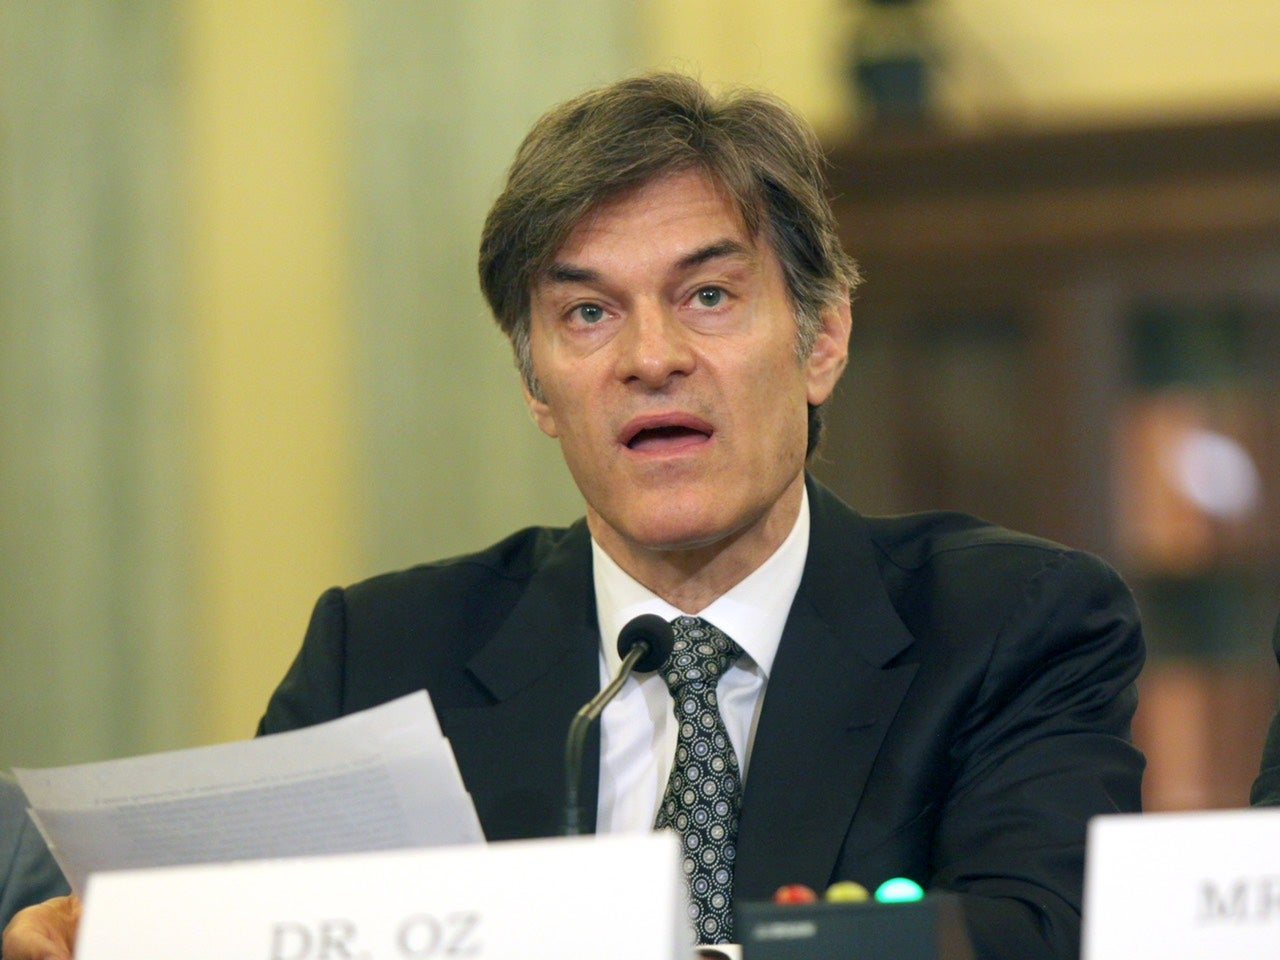 Study: Dr Oz Is Full Of Crap